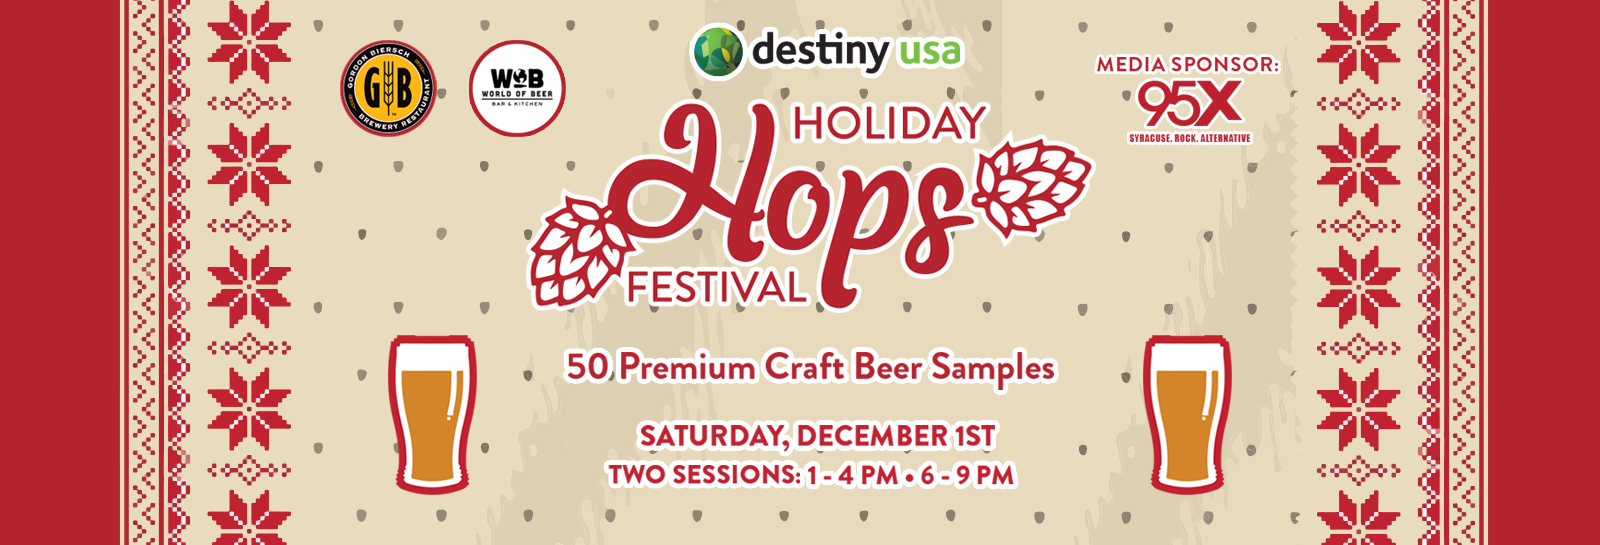 Holiday Hops Website Ad